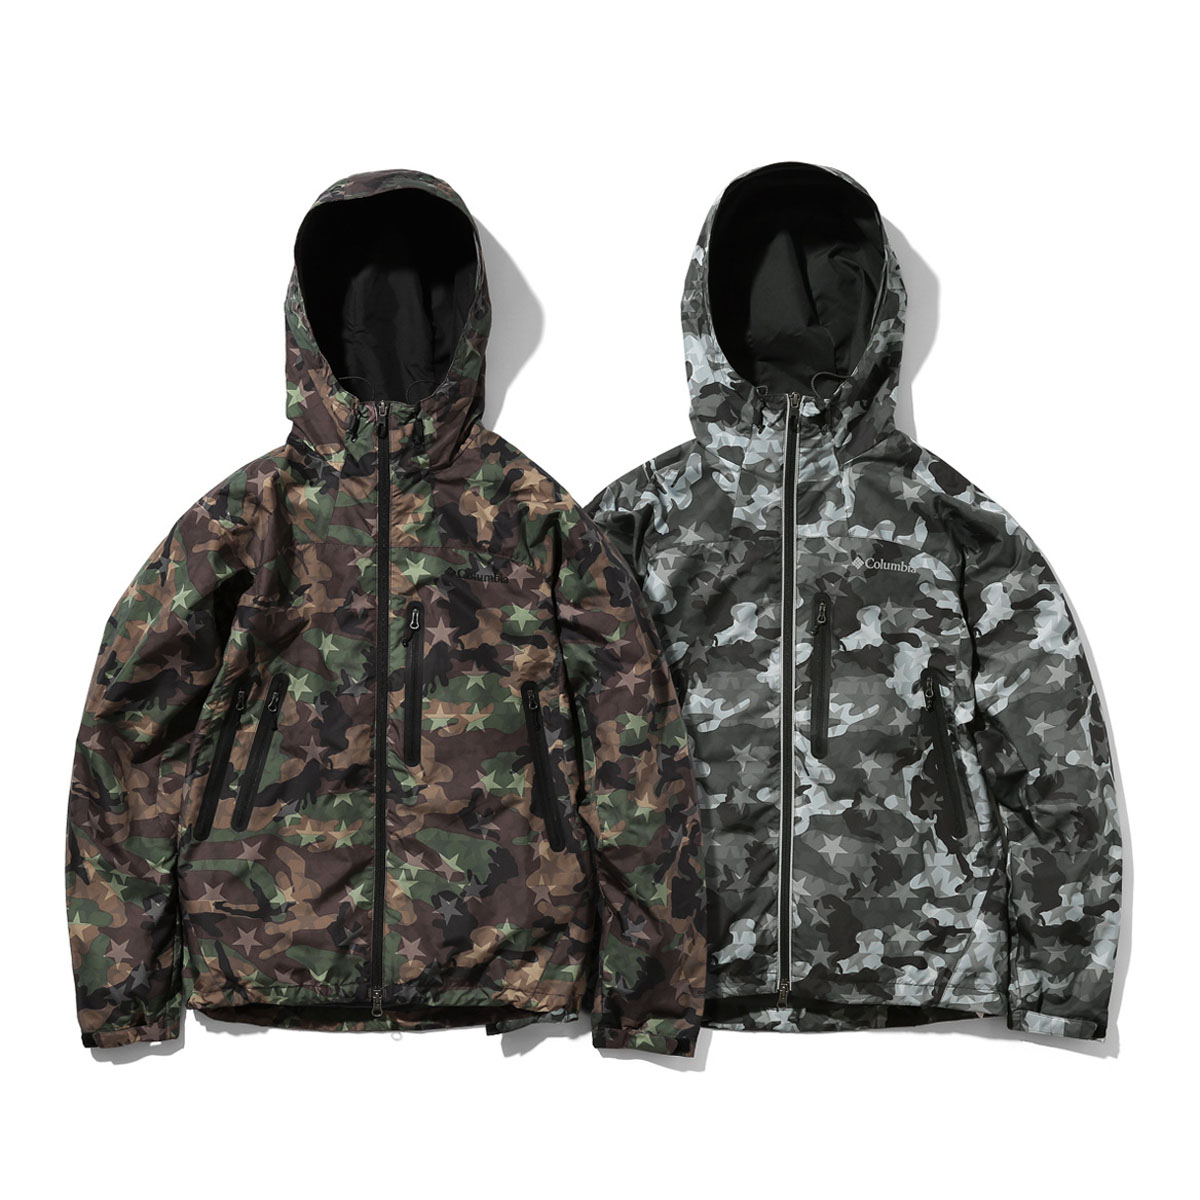 Columbia x ATMOS LAB DECRUZ SUMMIT JACKET